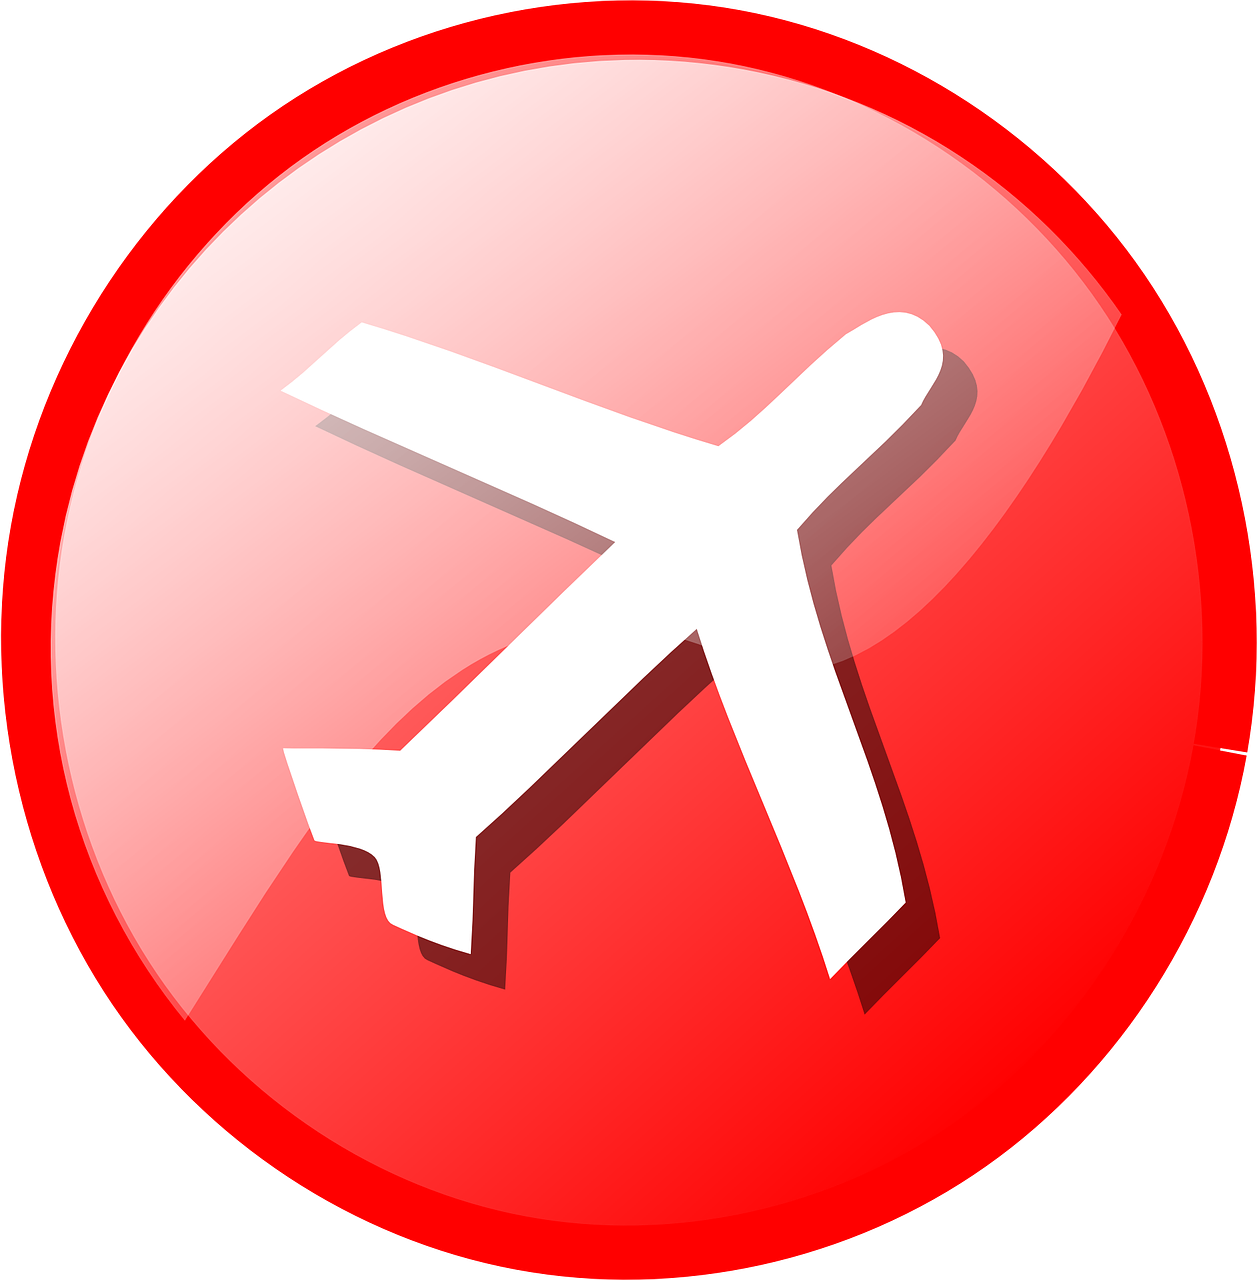 Button Glossy Journey Red Transparent Image Best Travel Insurance Travel Insurance Travel Icon